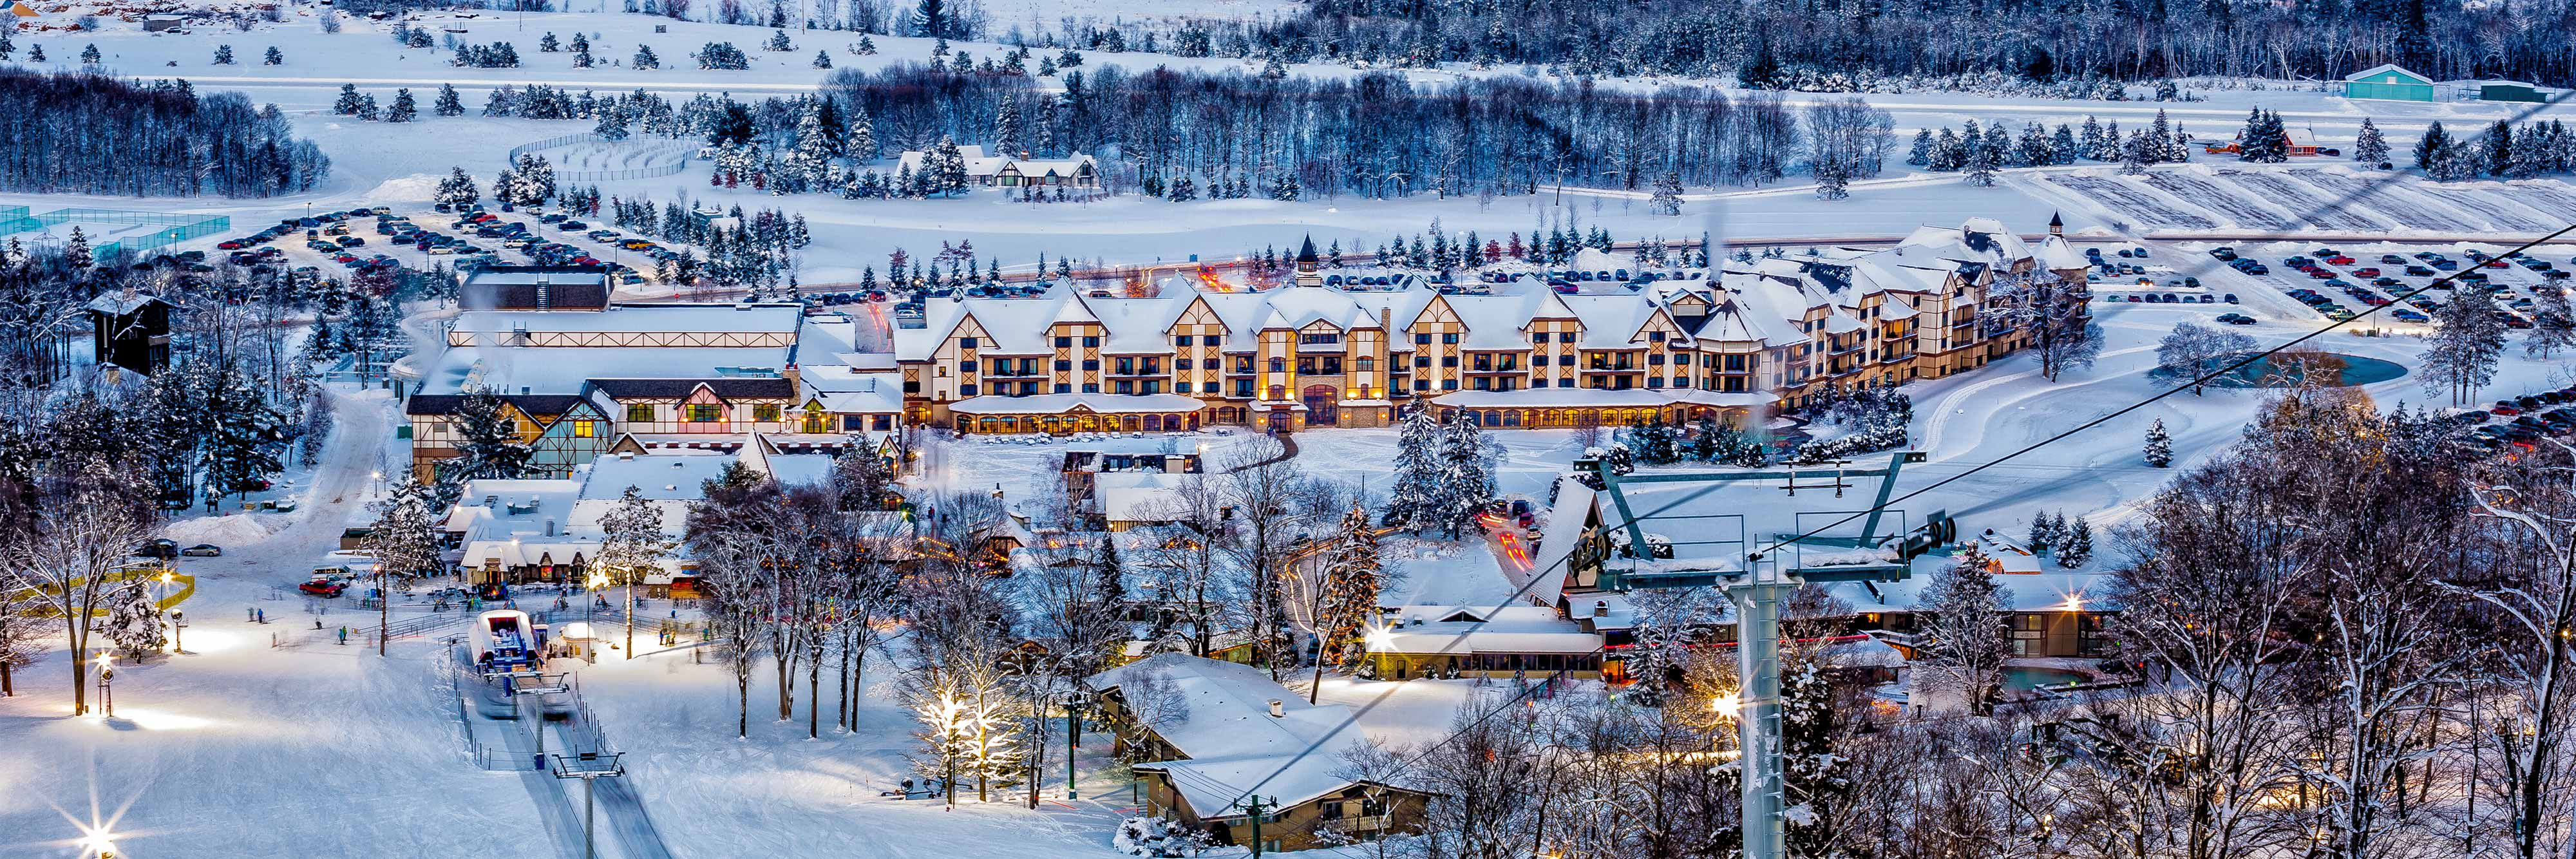 21 Unbelievably Awesome Christmas Card Photo Ideas - - Postable Pictures of boyne mountain